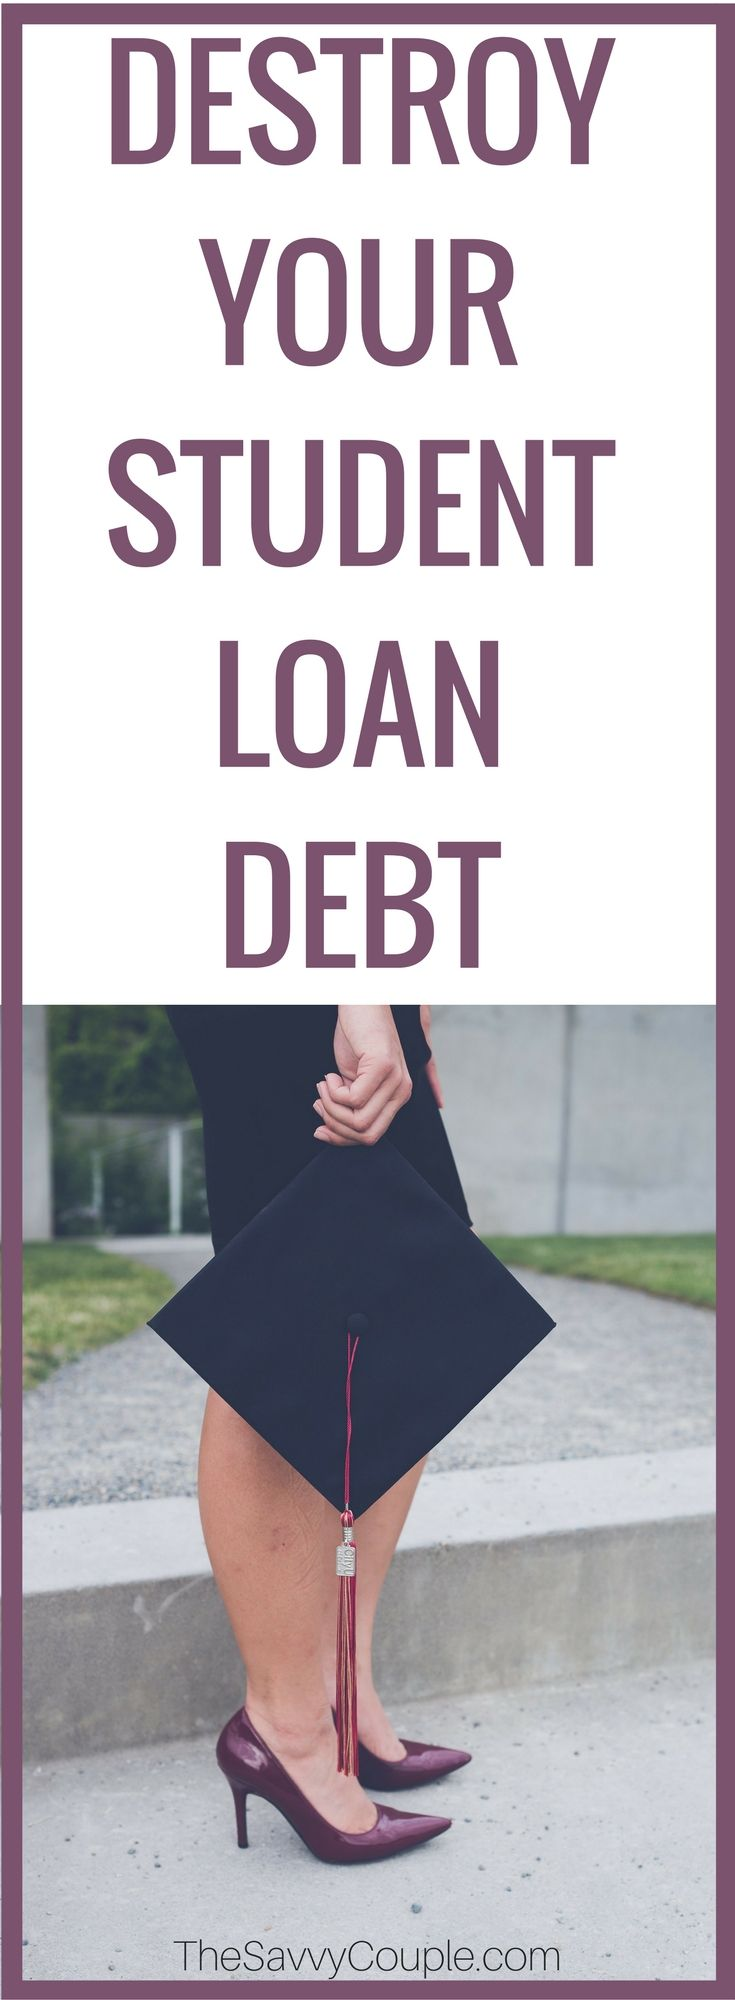 Struggling to pay your student loans? You're not alone. Celebrate the milestones in paying off your student loan debt. Every little bit counts! Take control over your student loan payments. Student loan debt does not need to consume your budget. Student Loan Debt   Student Loans   Refinance Student Loans   Loan Forgiveness   via @TheSavvyCouple